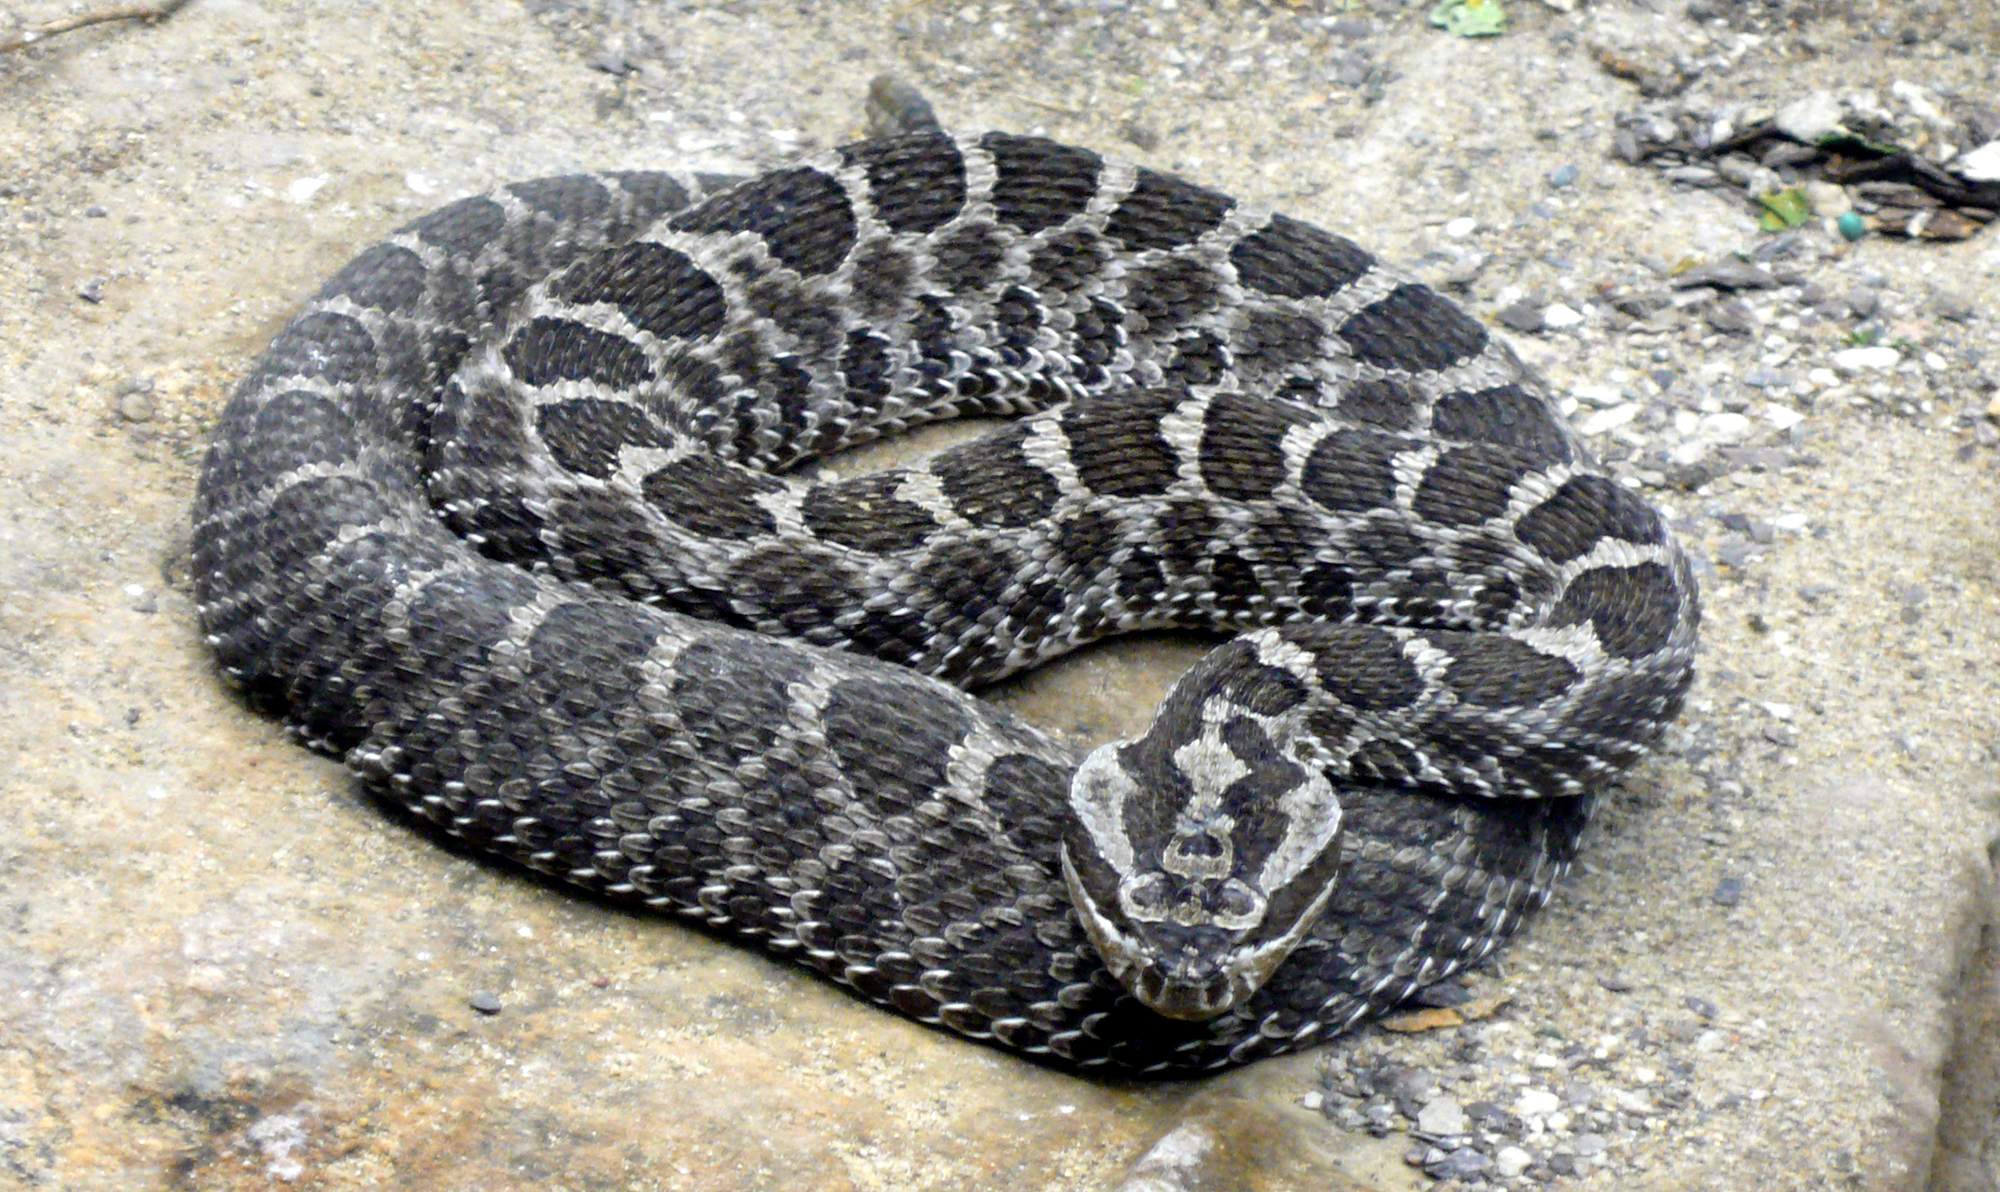 This is a picture of the threatened eastern massasauga rattlesnake.